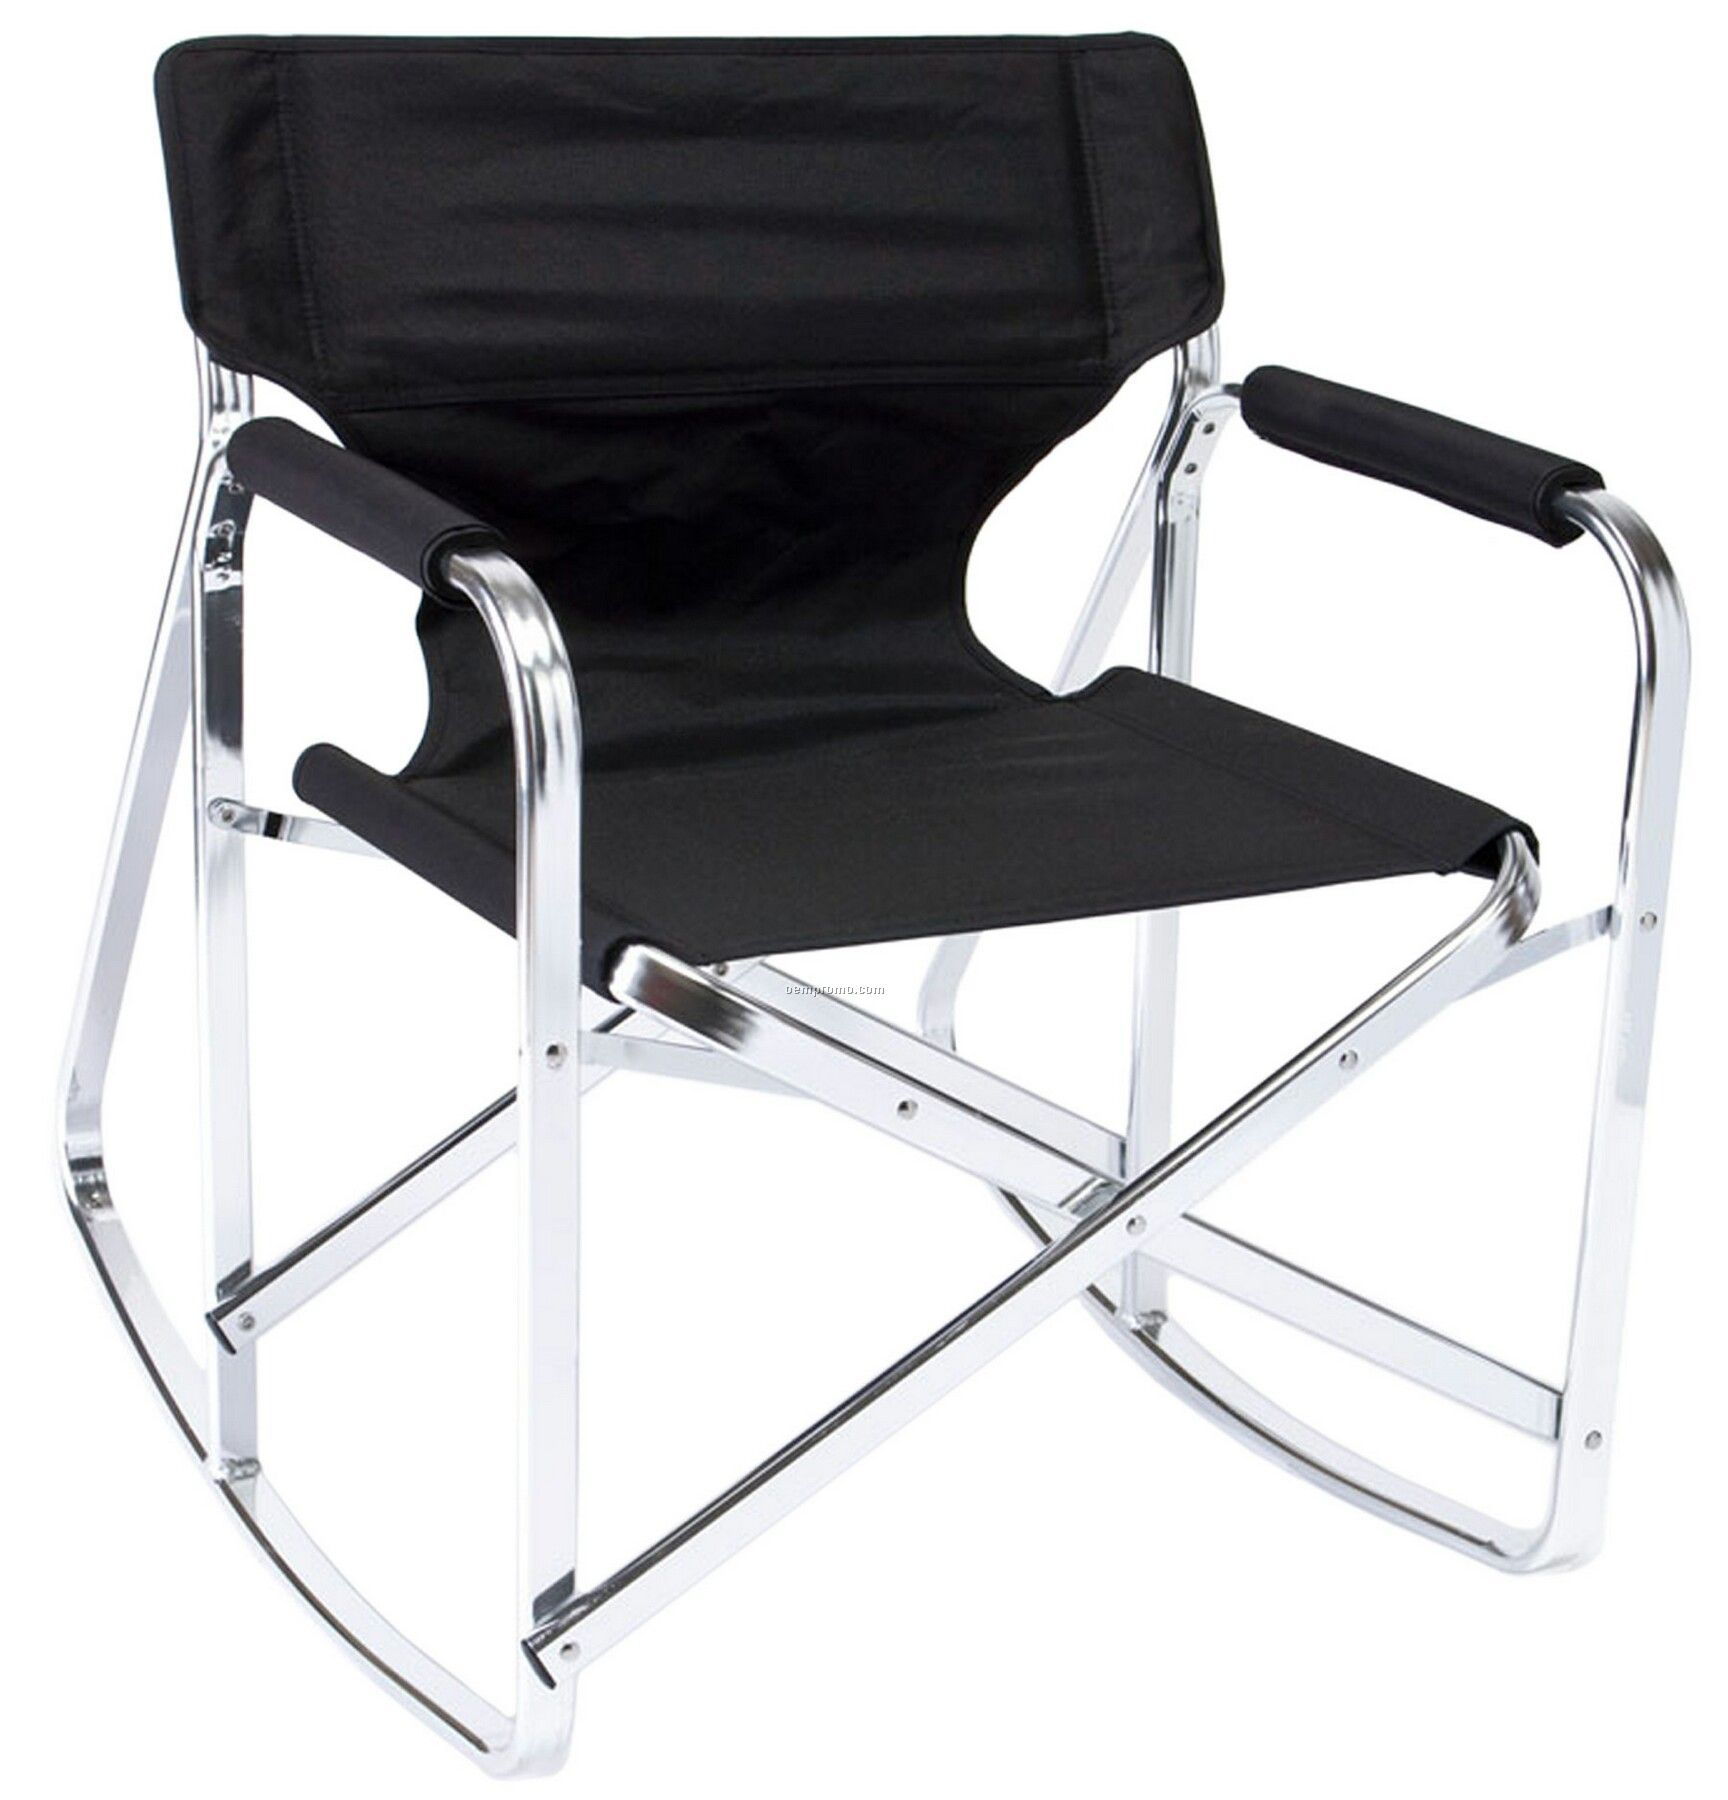 "HGT International Canopy Chair (Width: 34.23"") at Blain's Farm  Fleet"